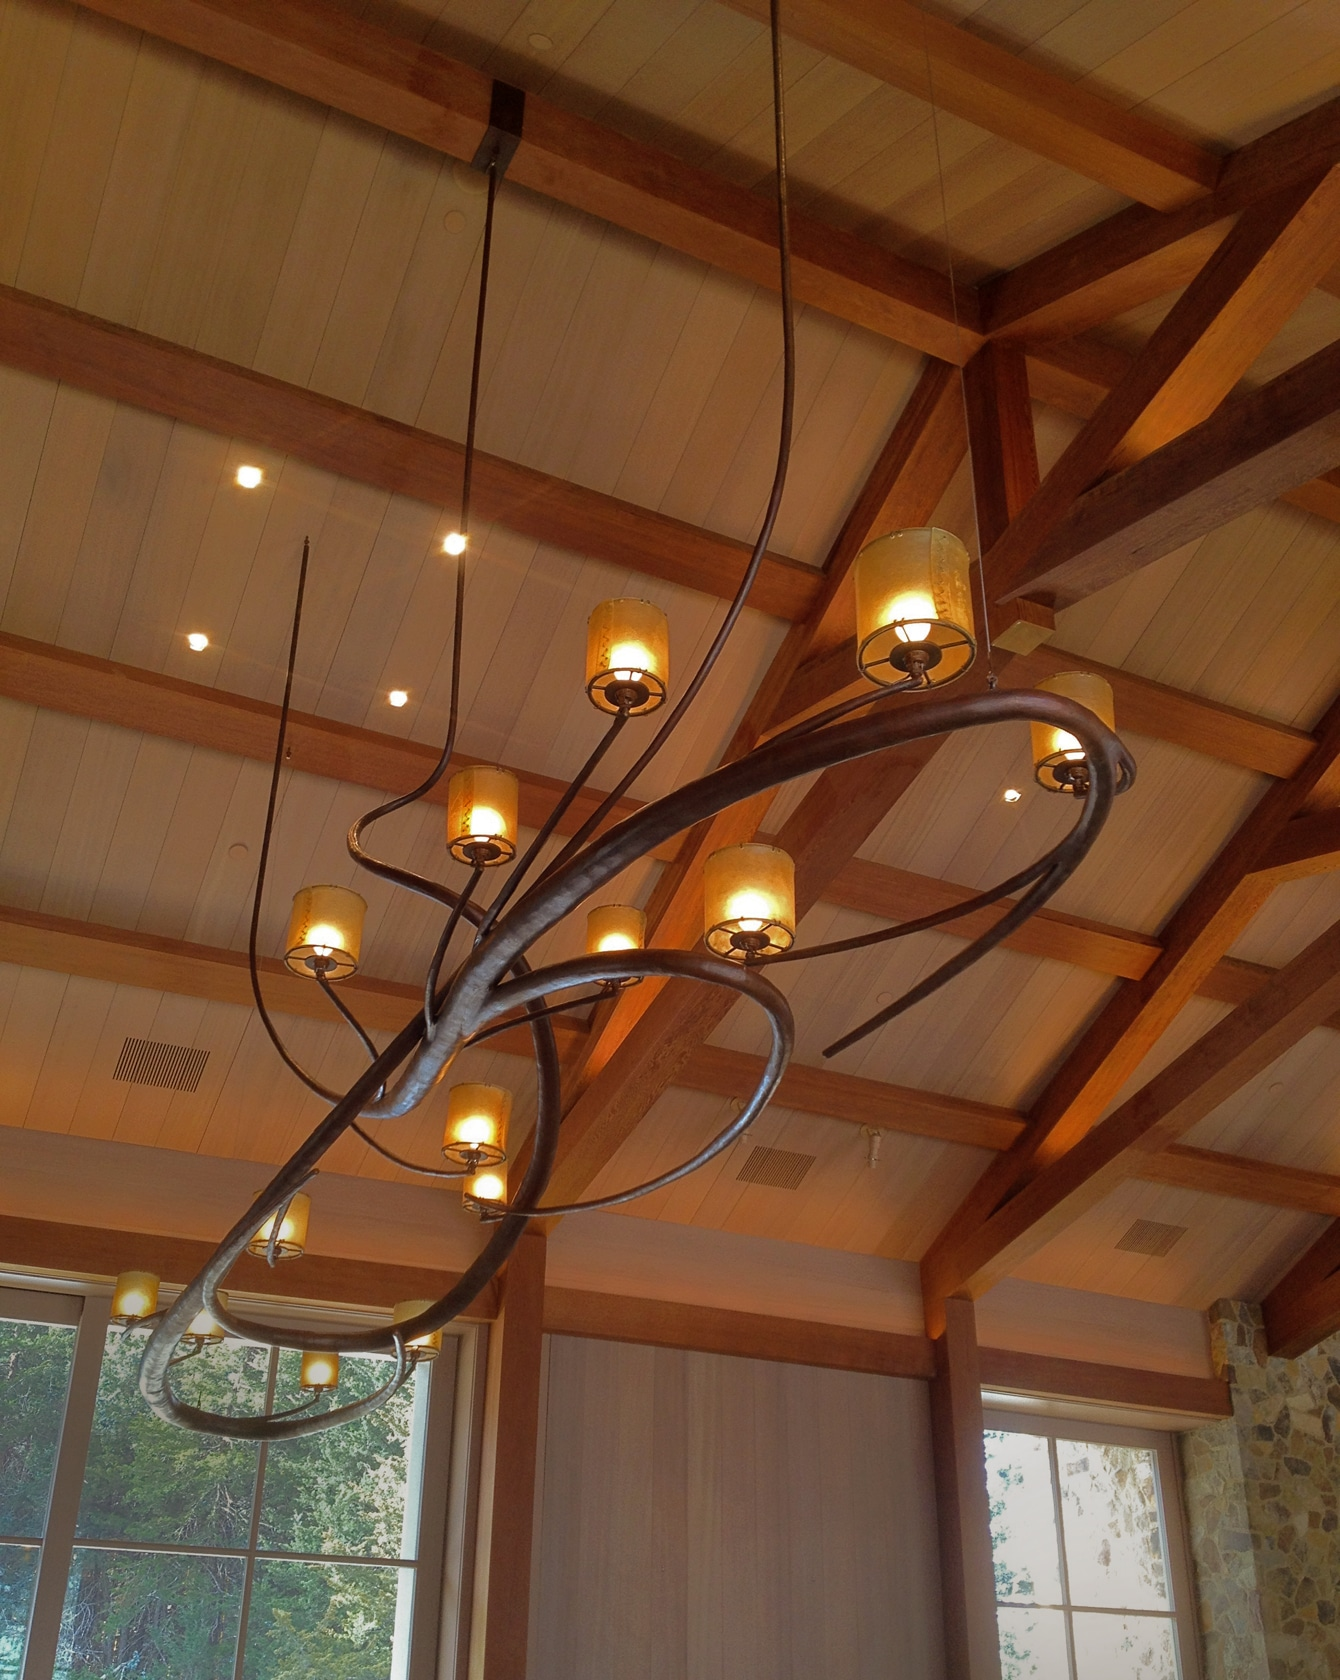 Blacksmith, Forged, Custom, Design, Daniel Hopper Design, Iron, Steel, Lighting, Chandelier, Rawhide